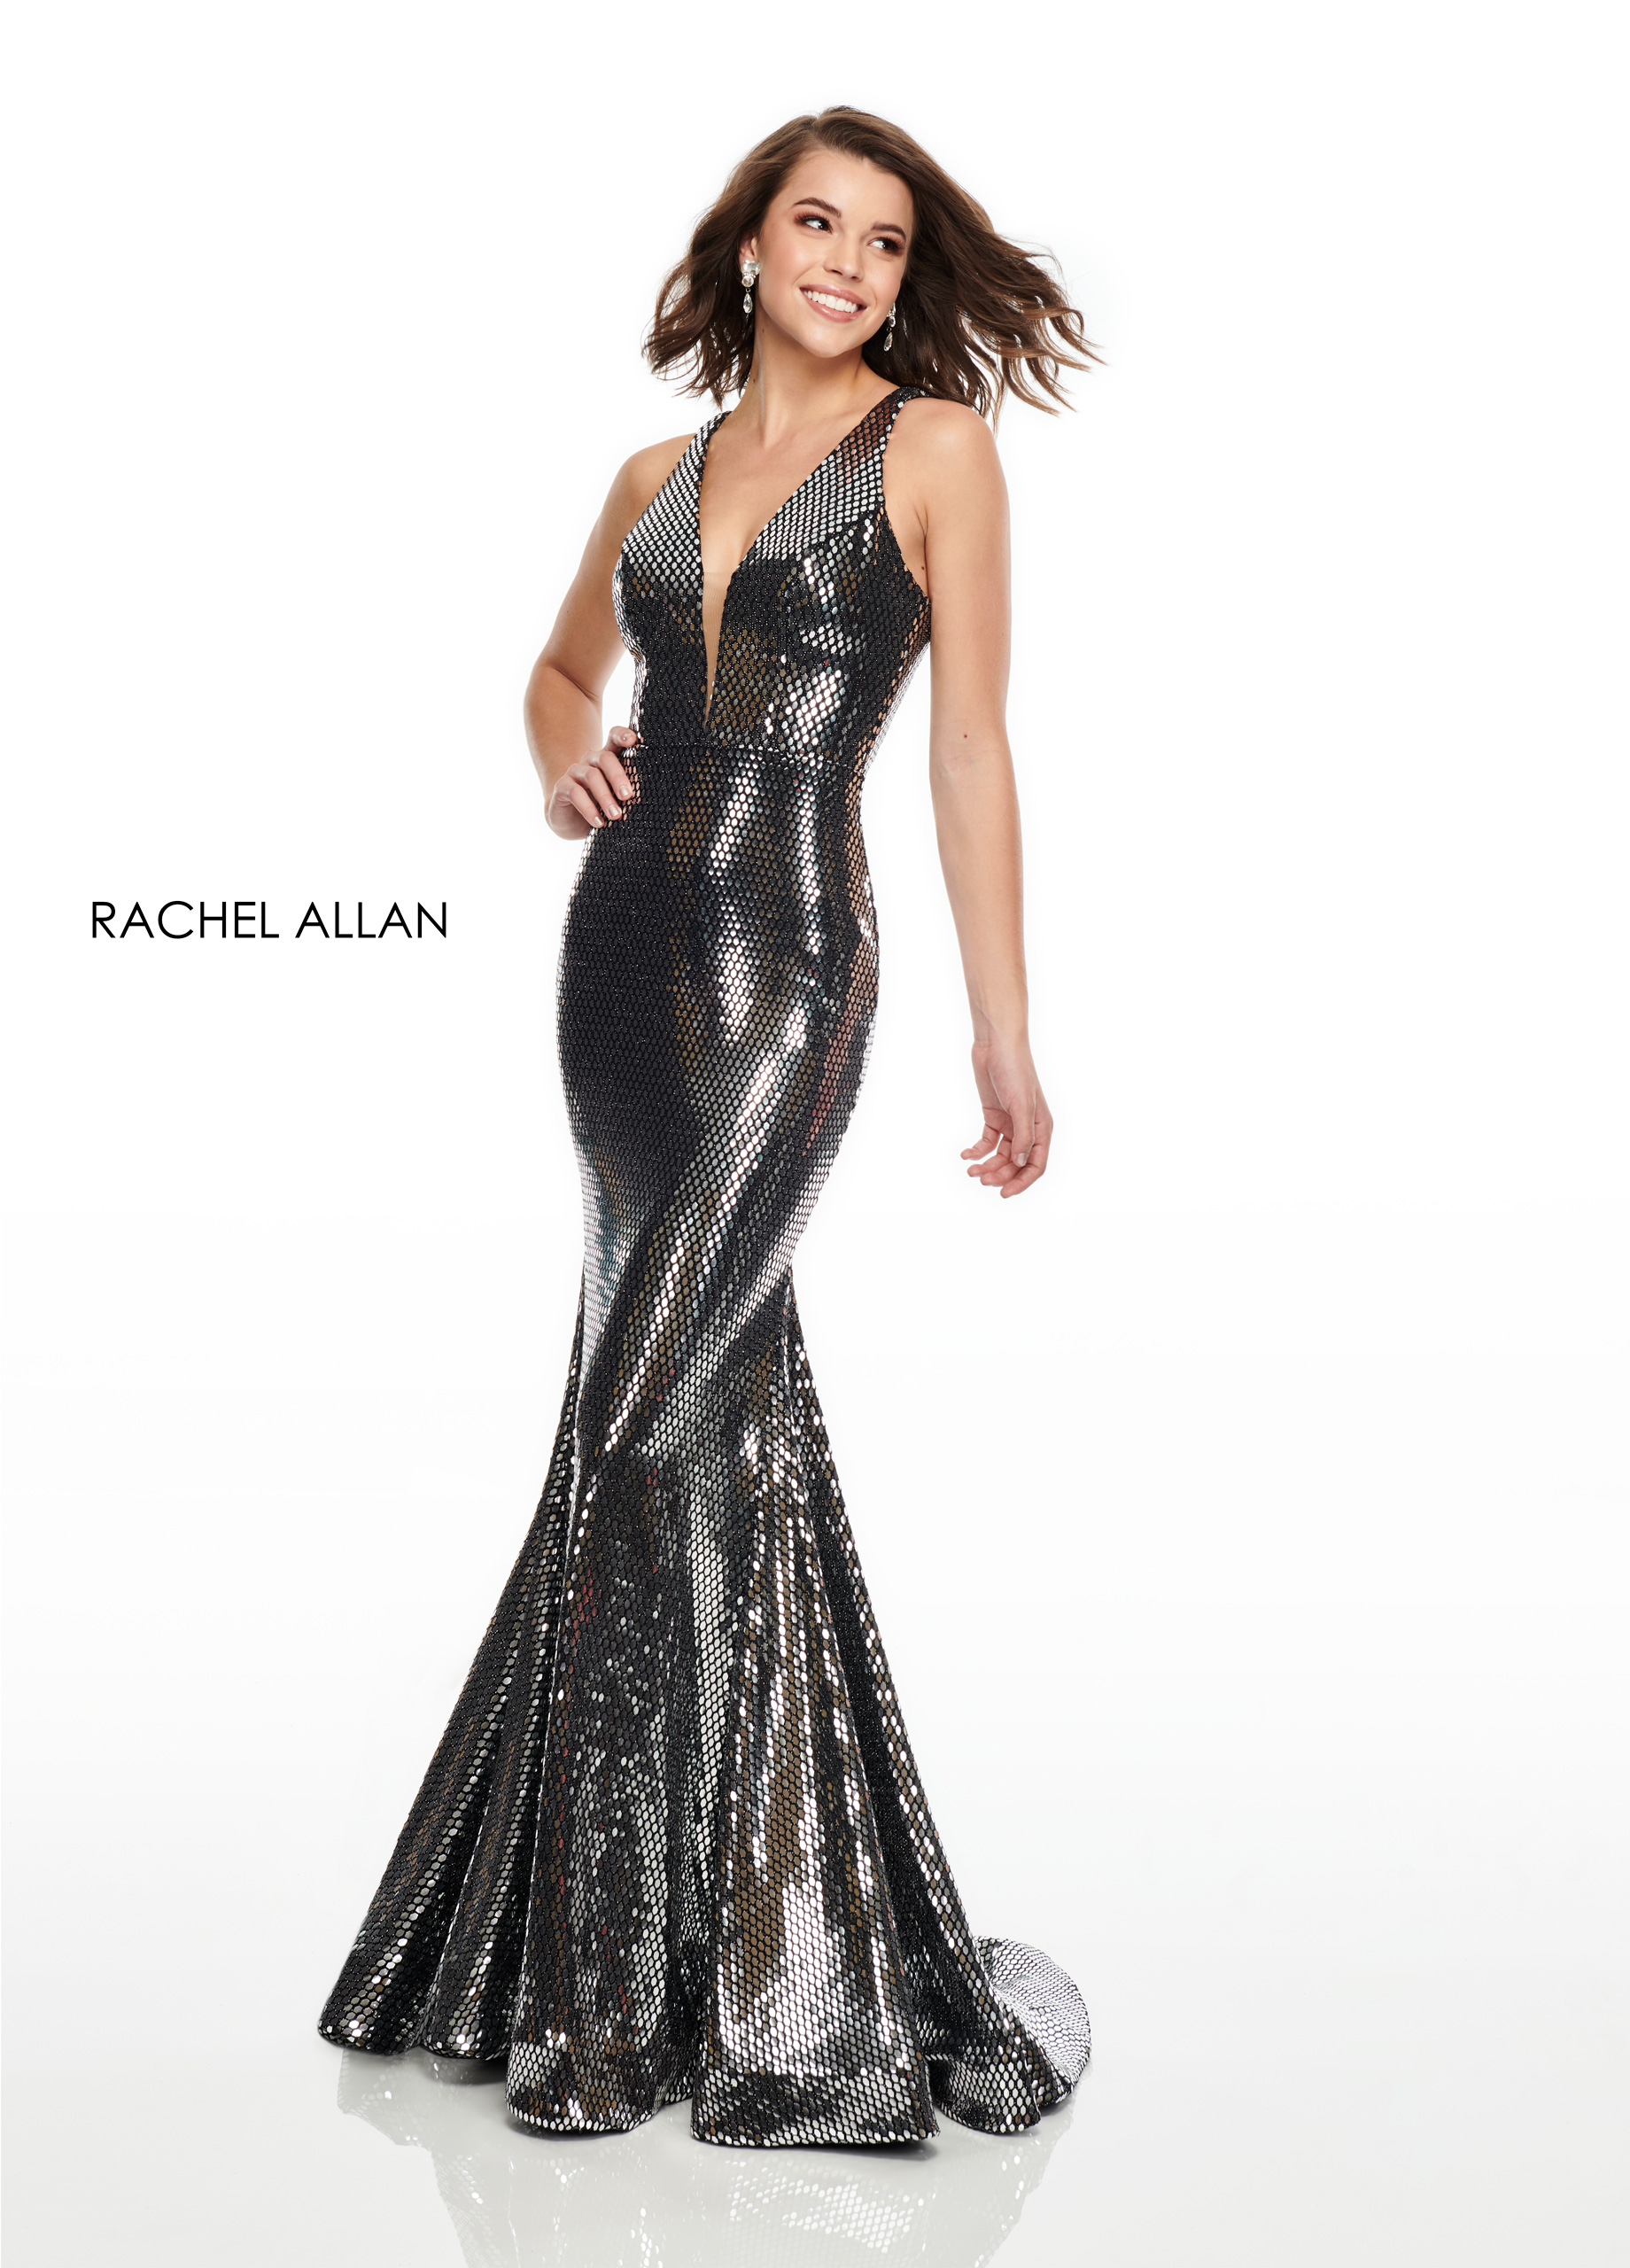 V-Neck Fitted Long Prom Dresses in Silver/gunmetal Color